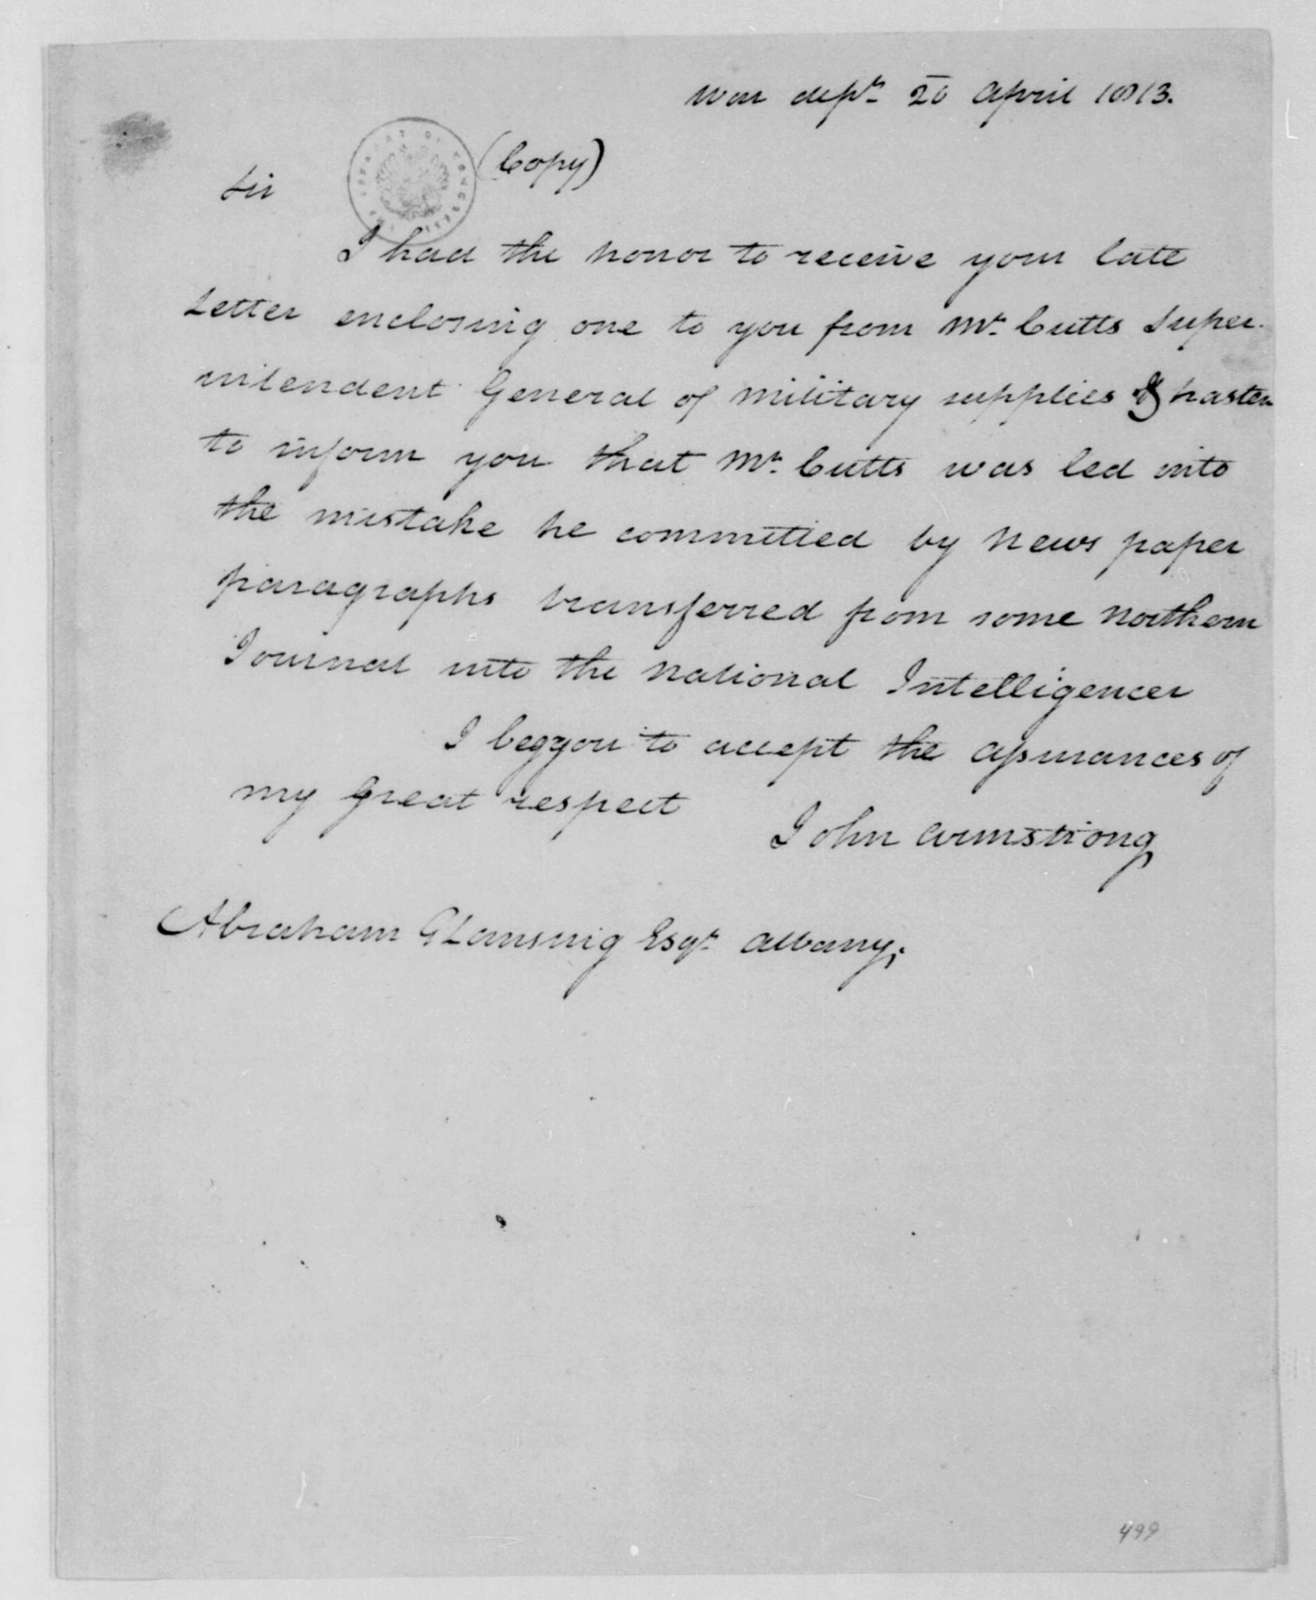 John Armstrong to Abraham G. Lansing, April 20, 1813.